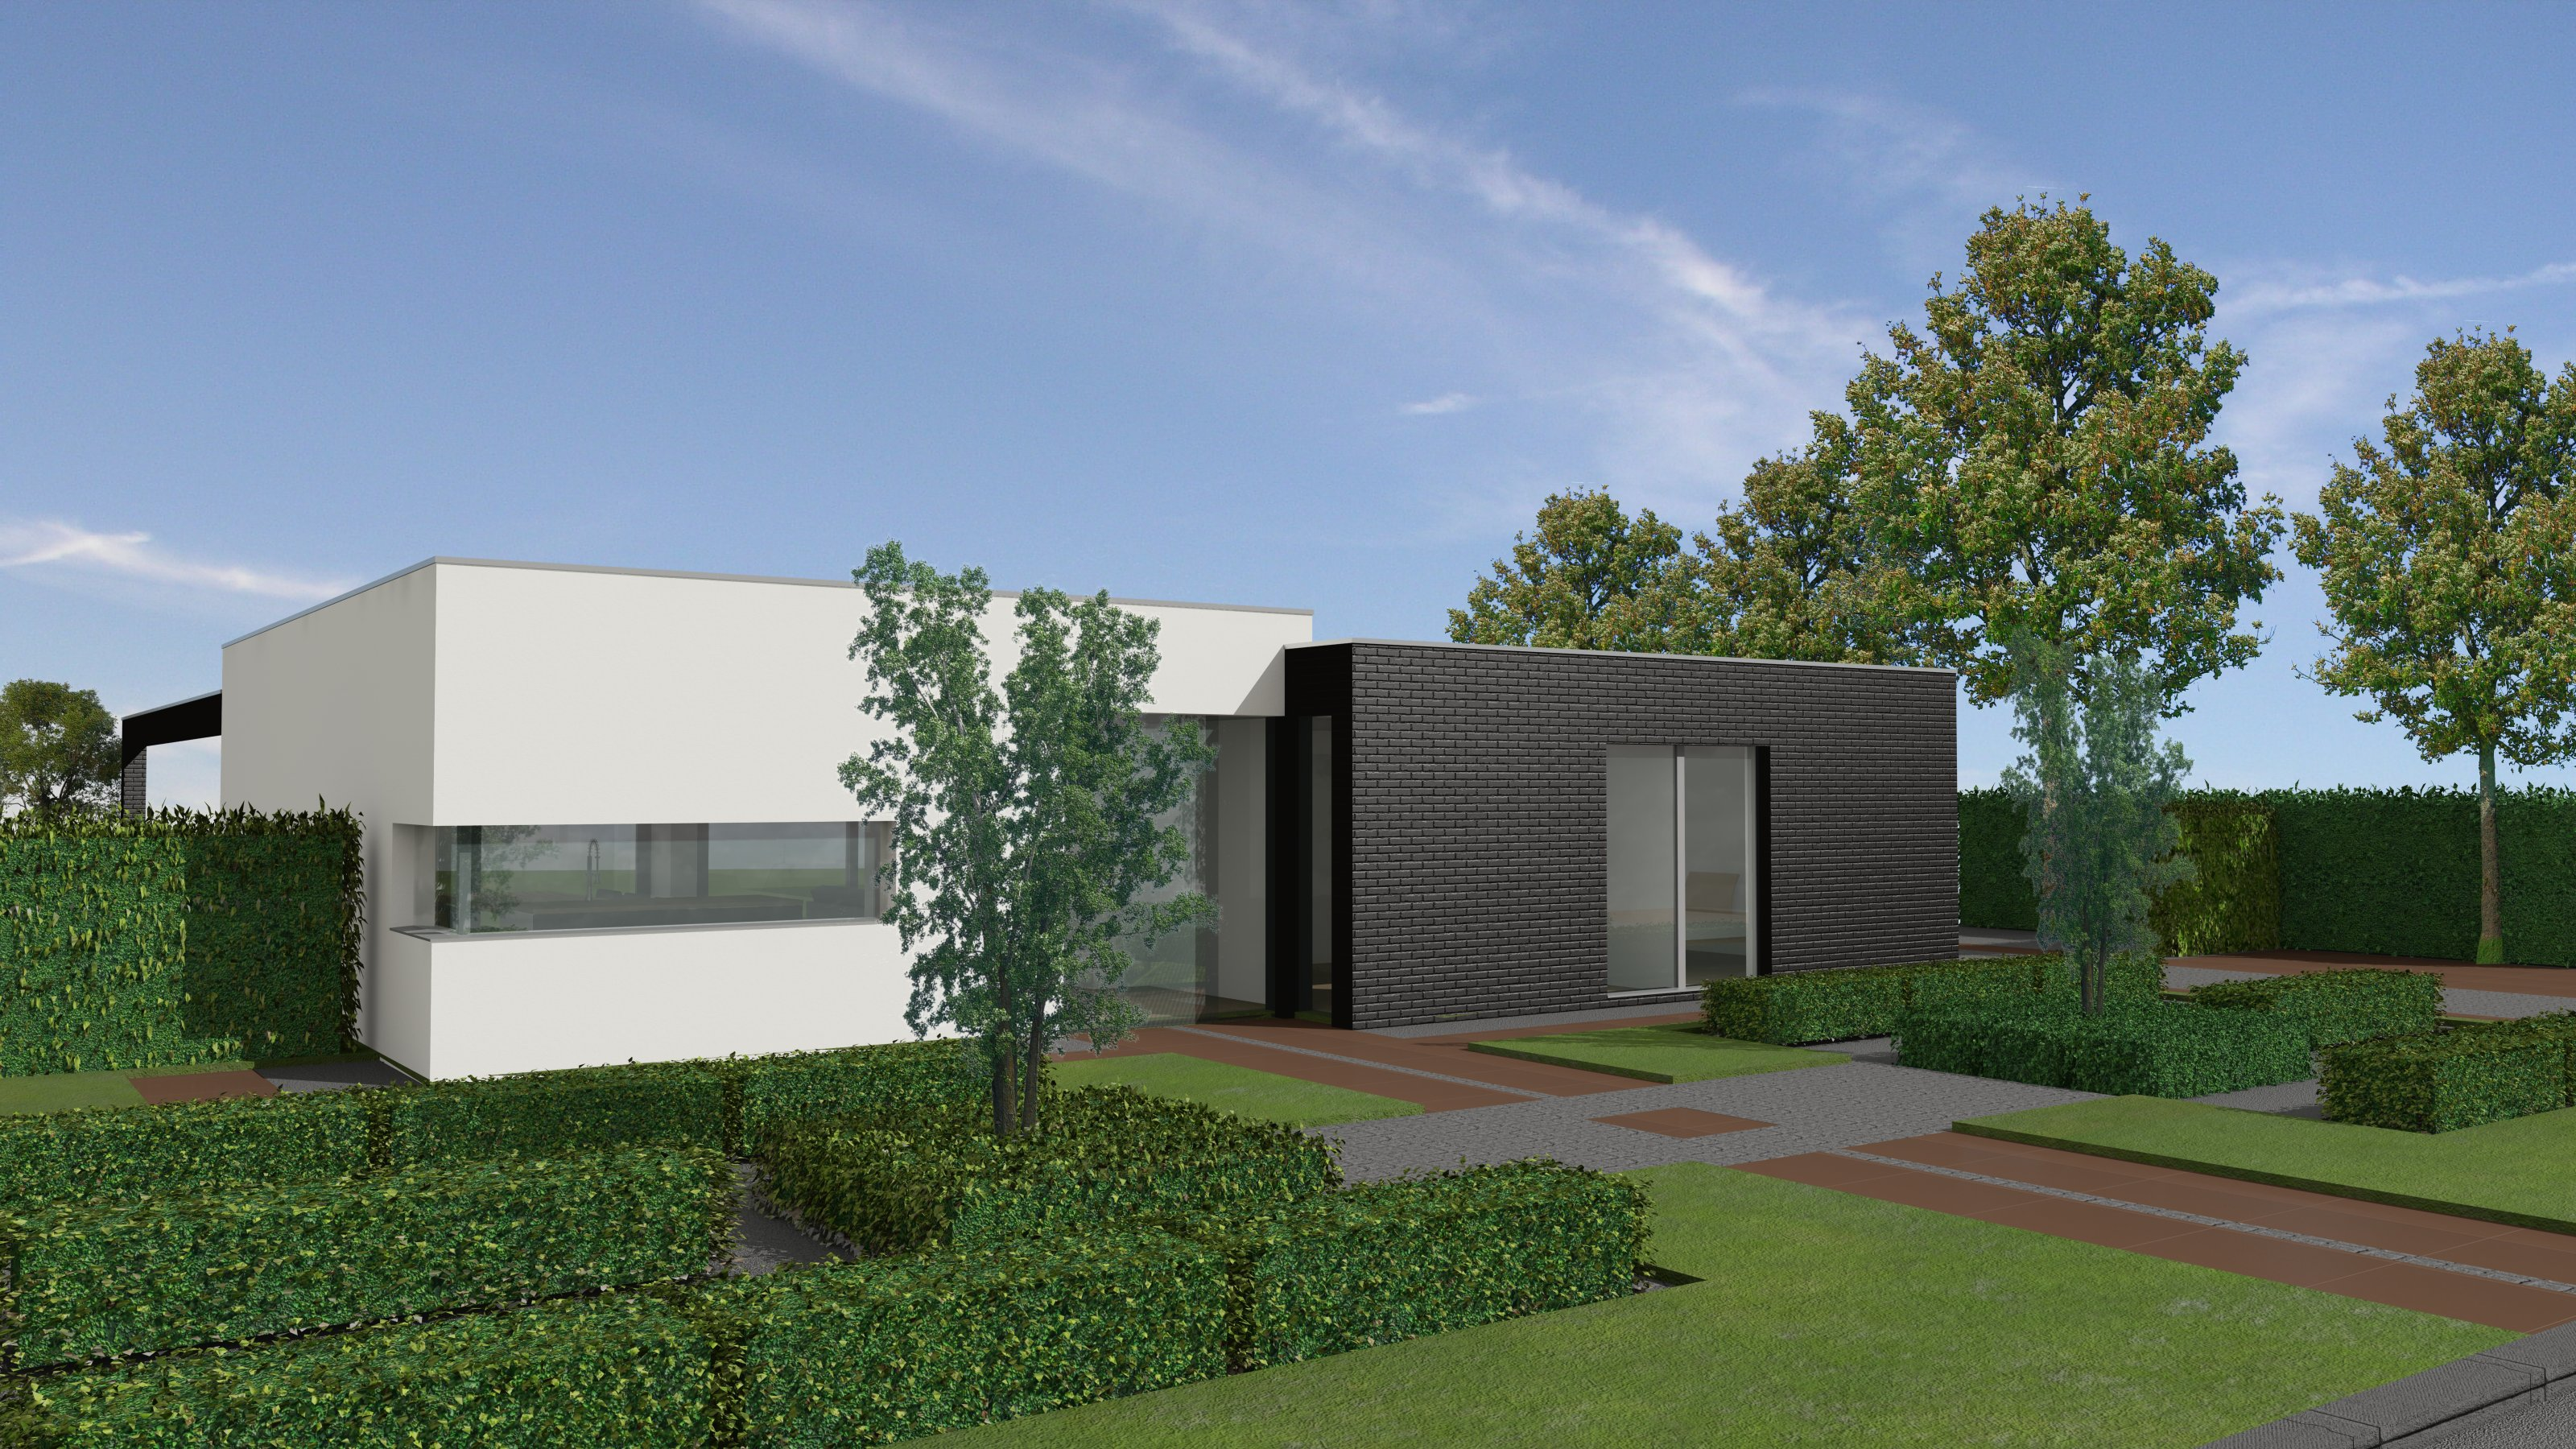 Bungalow laten bouwen type gre with bungalow laten bouwen for Vrijstaand huis laten bouwen